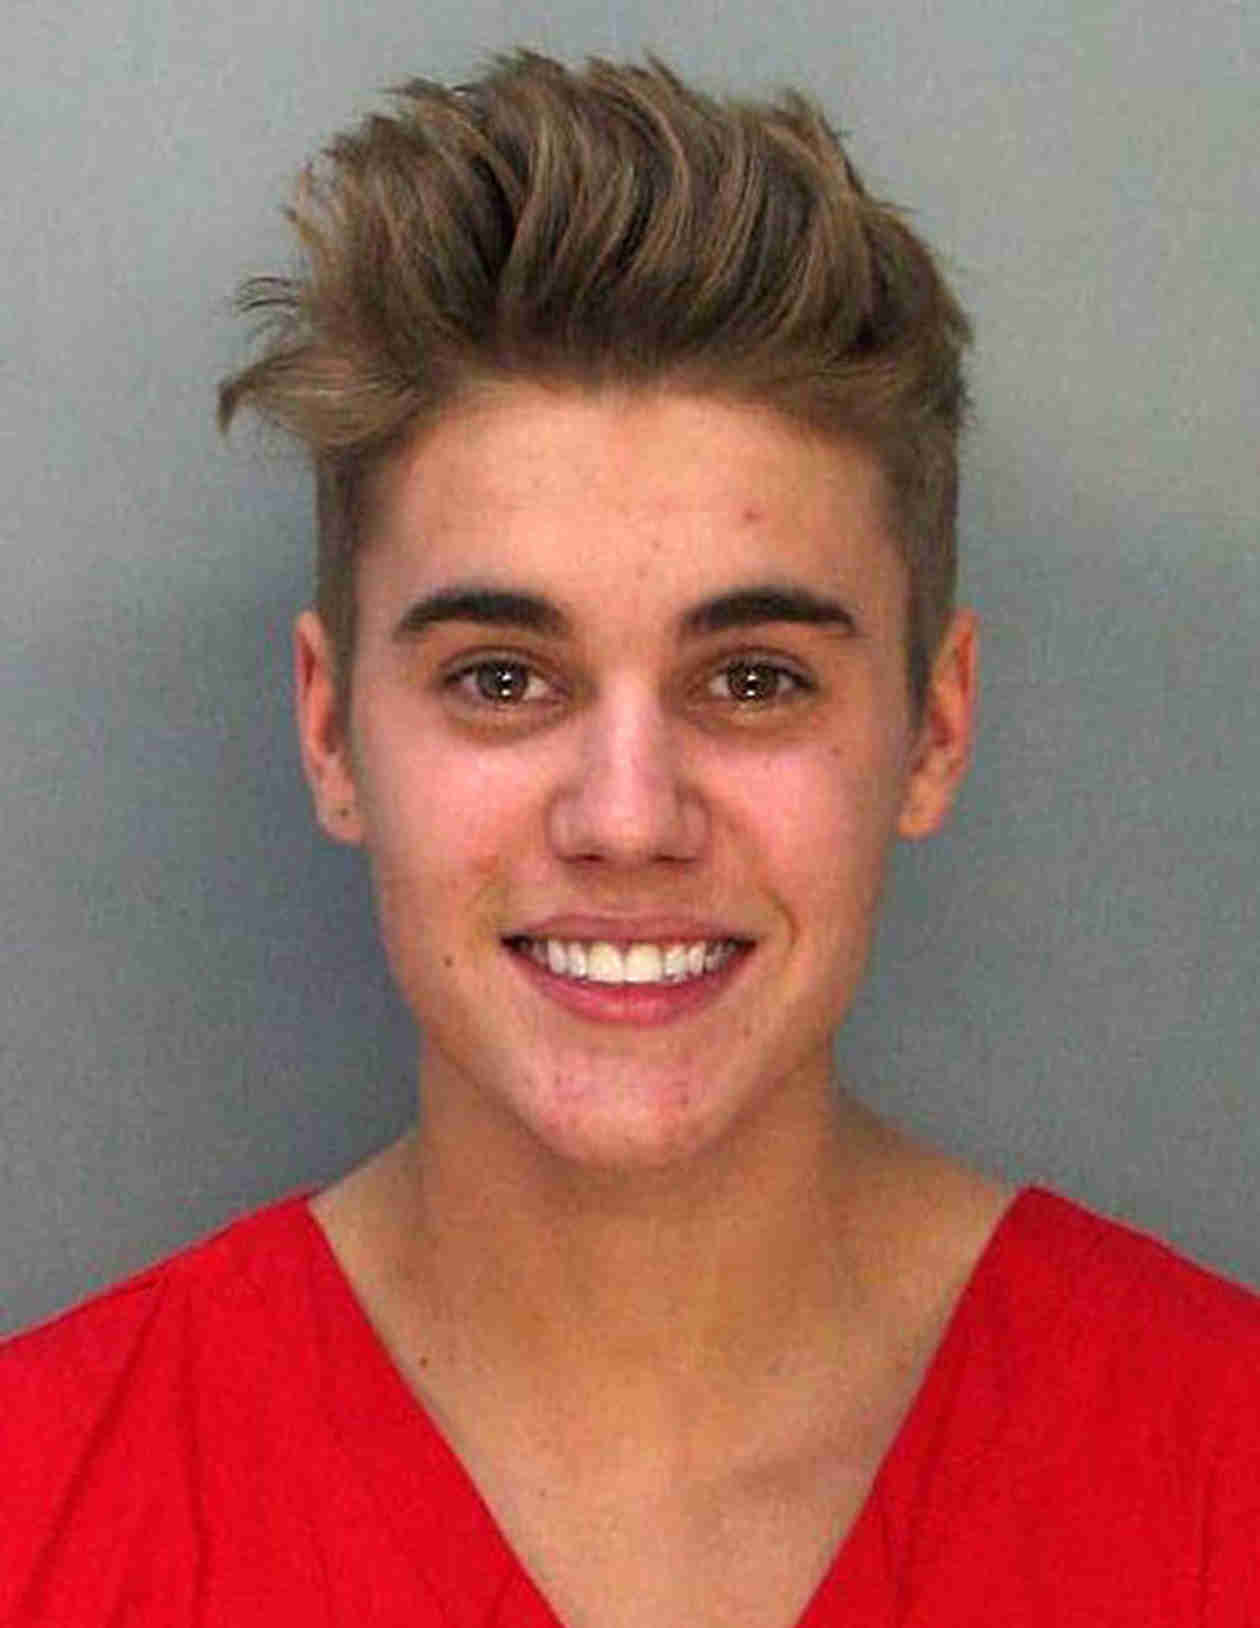 Justin Bieber: A Timeline of His Reckless Behavior